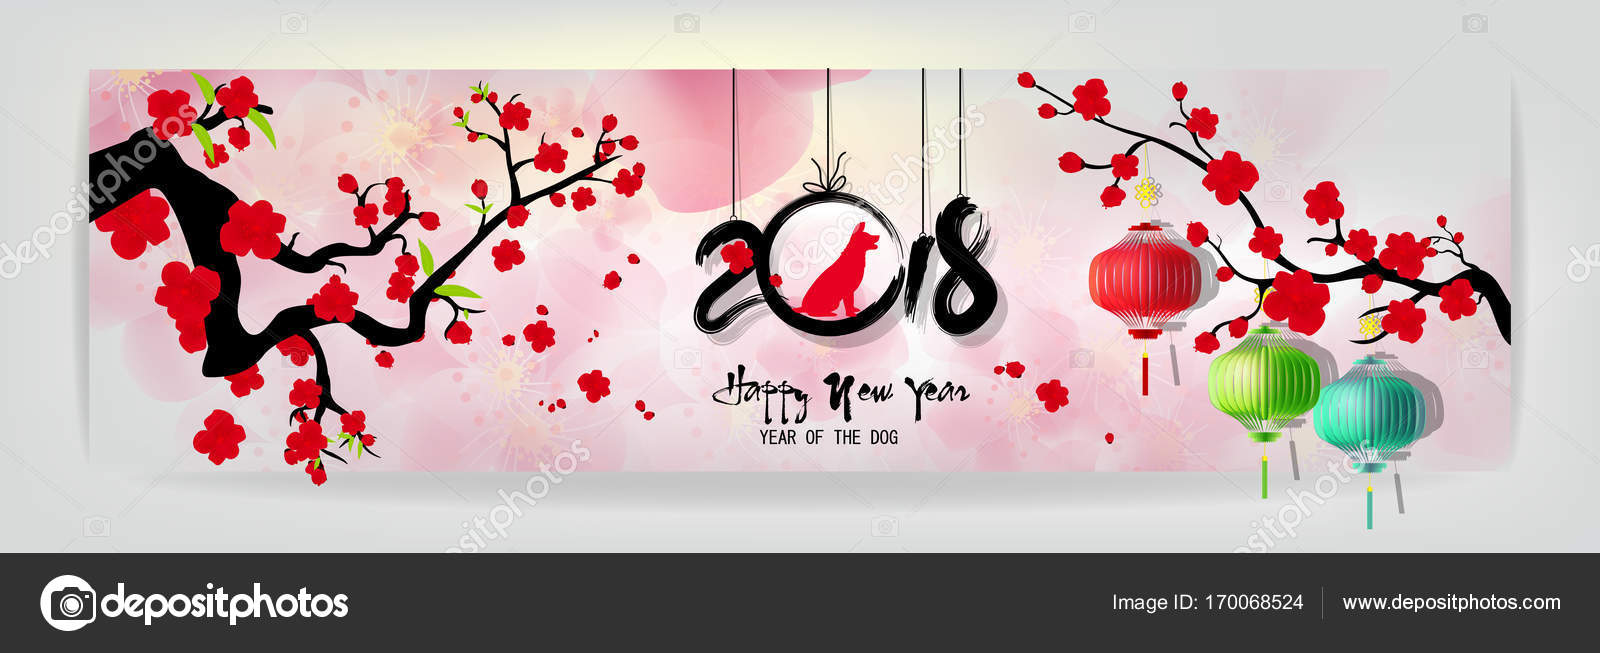 happy new year 2018 greeting card and chinese new year of the dog cherry blossom background vector by kimminthien